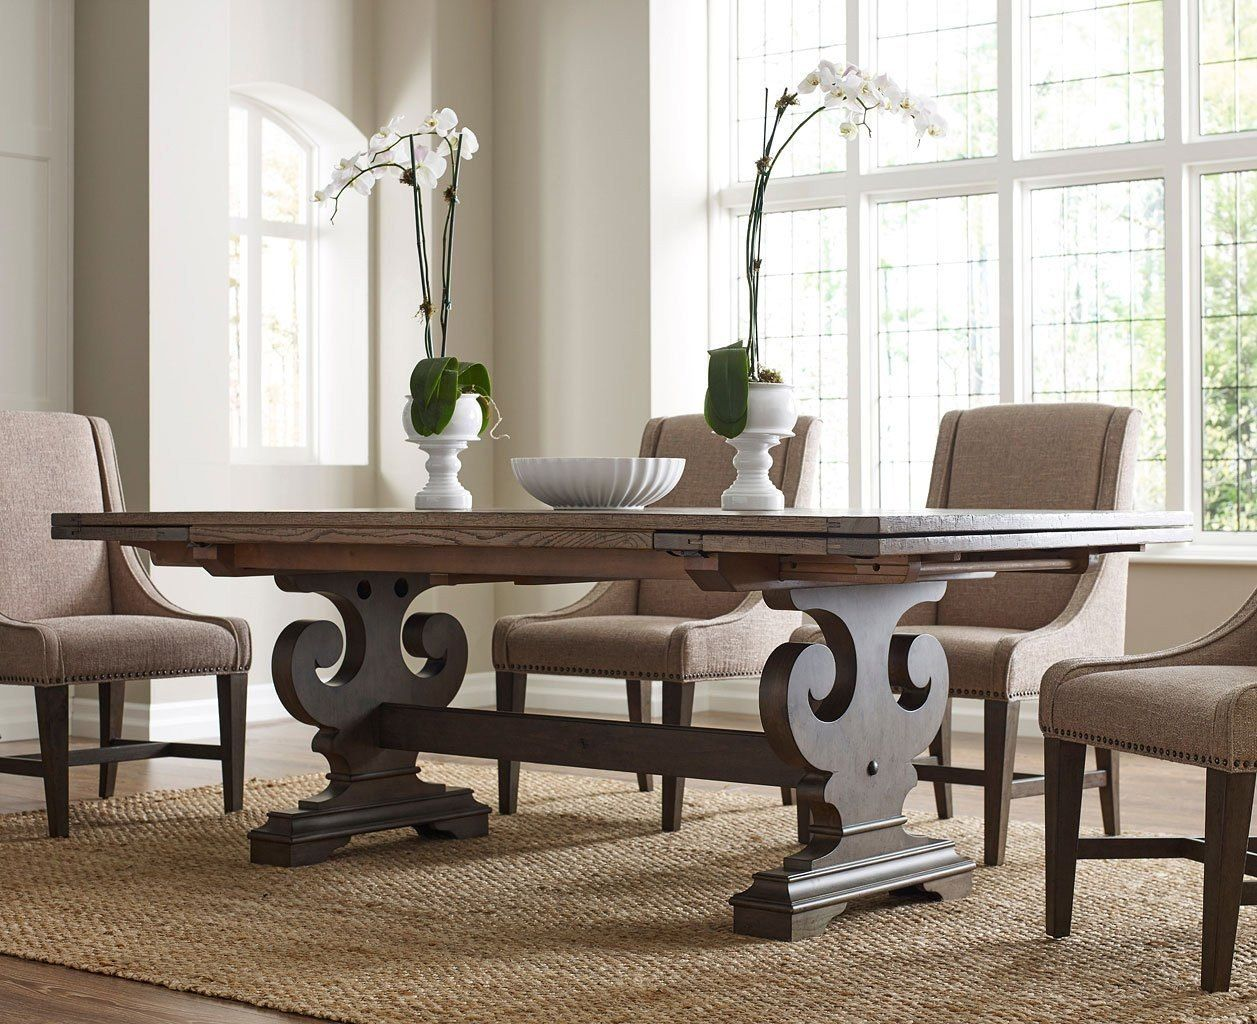 Greyson Crawford Refractory Dining Table Dining Table Furniture Dining Room Furniture Design